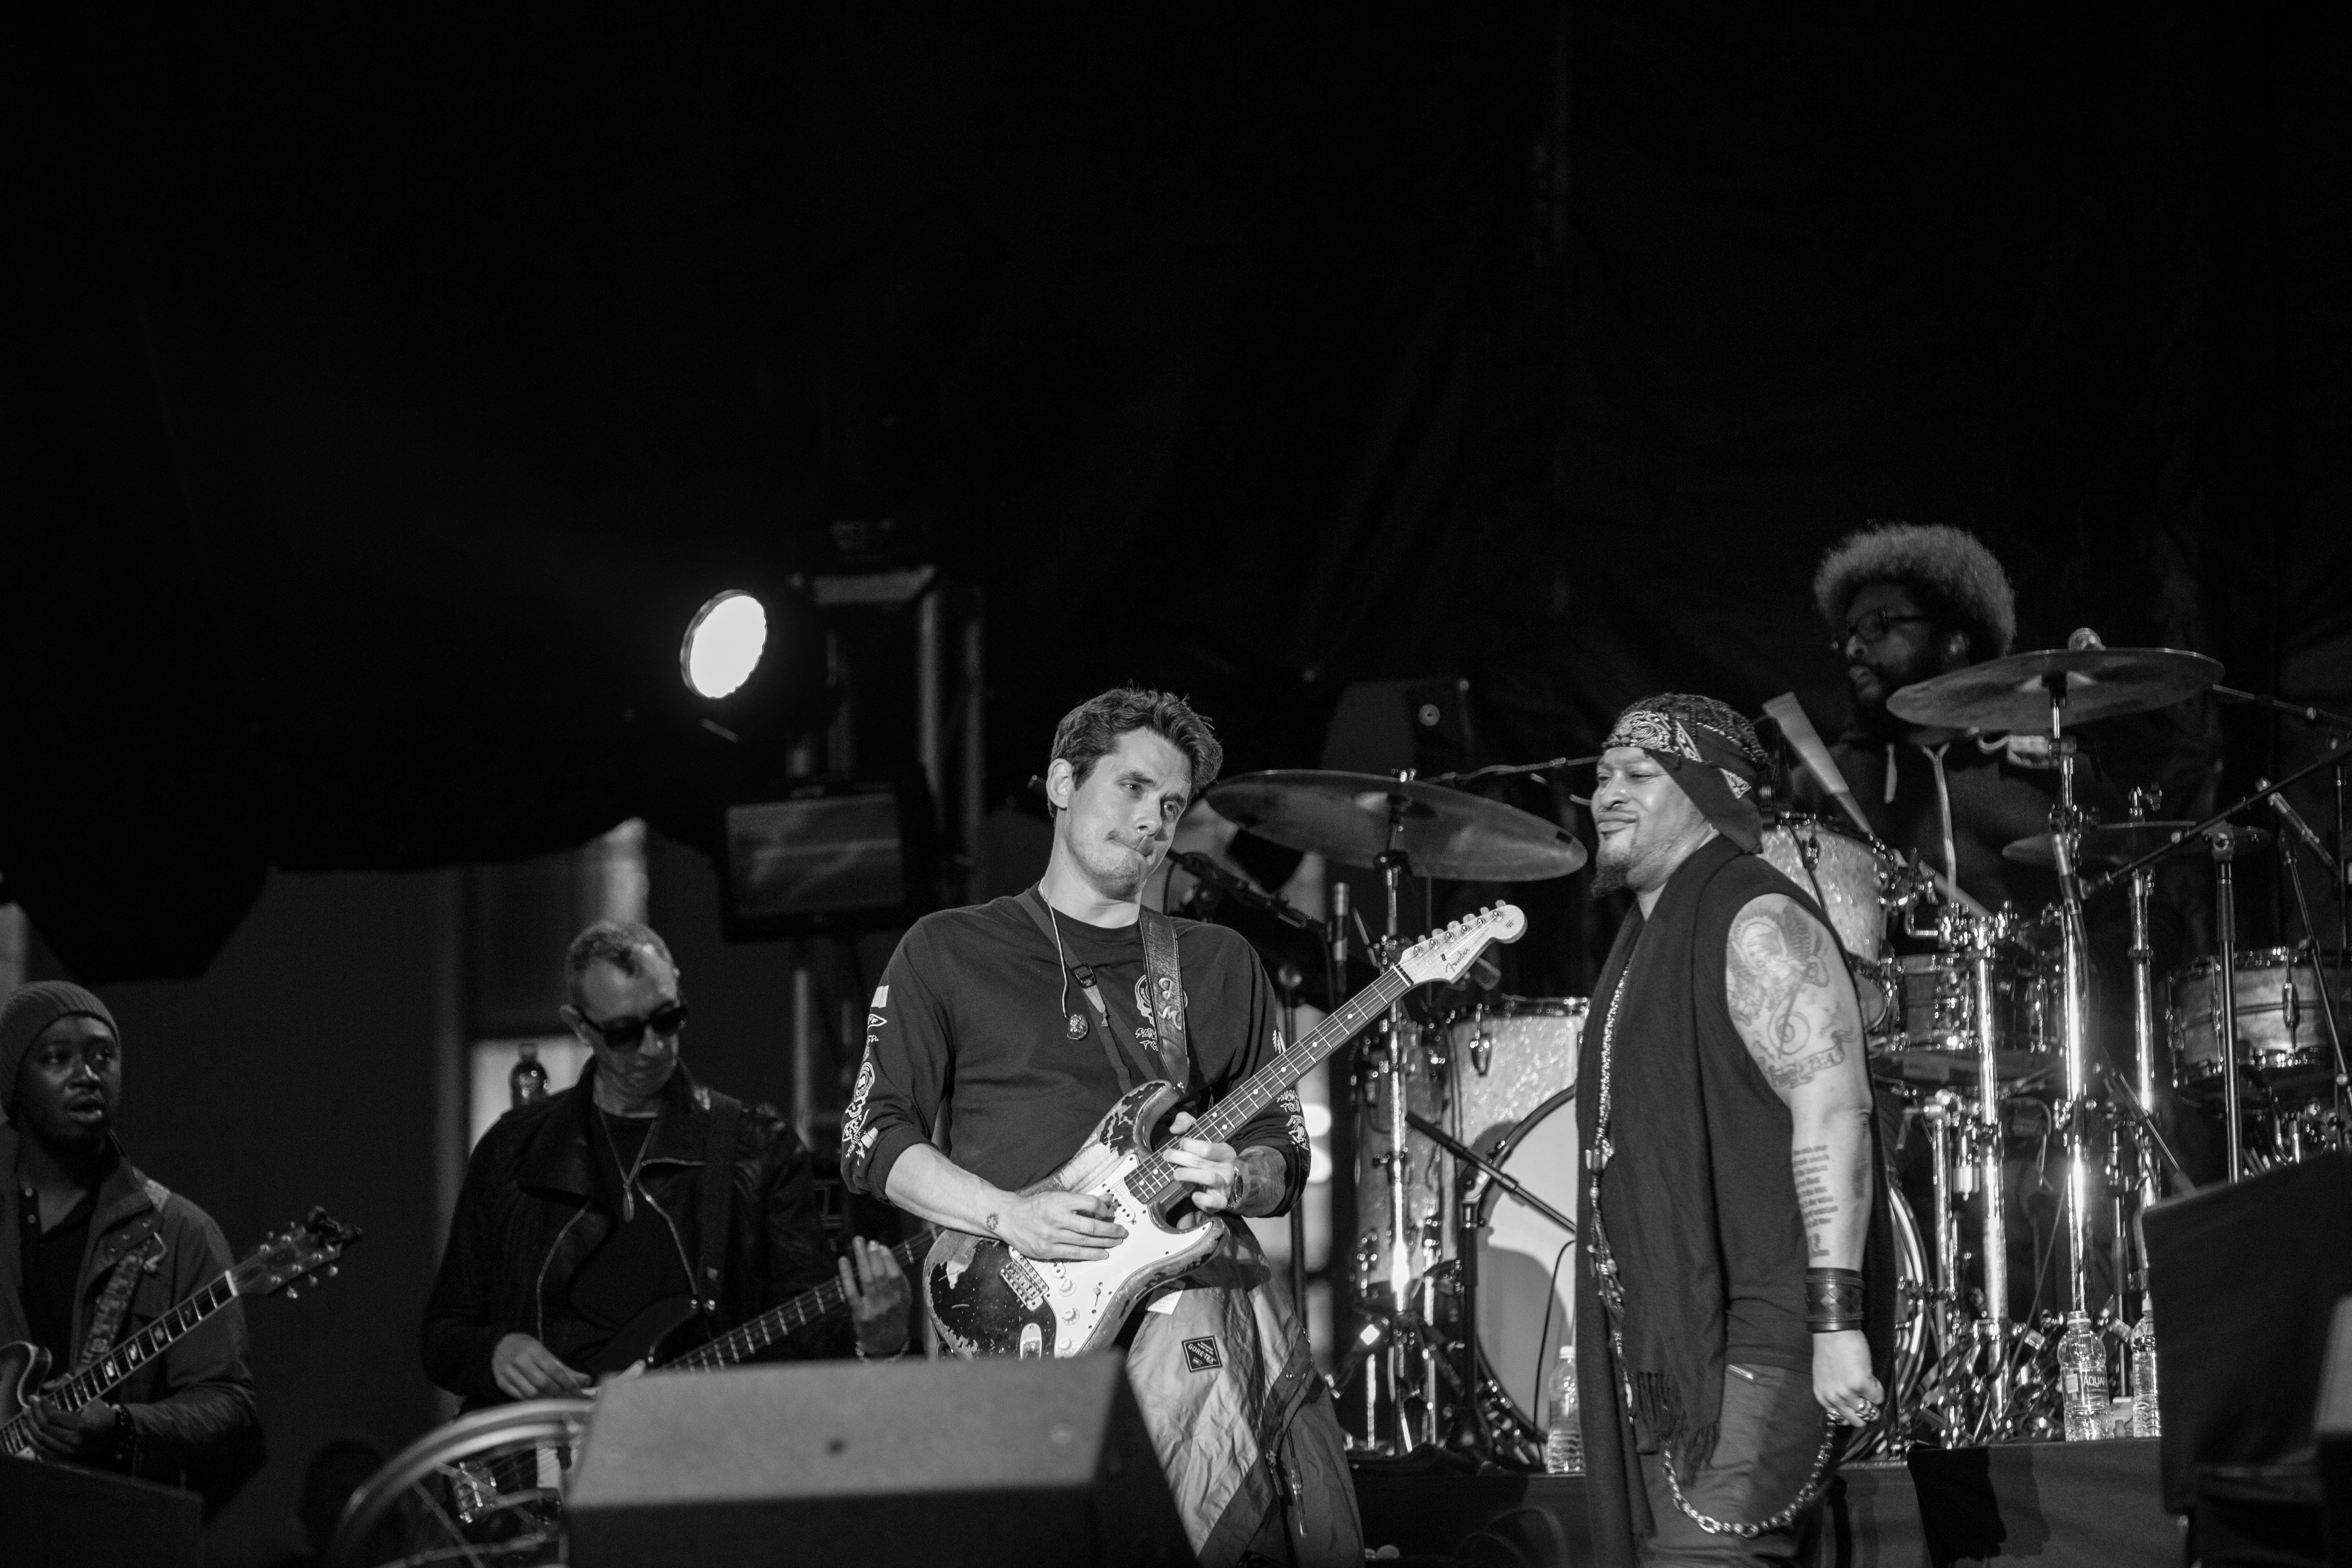 John Mayer And Dangelo Backed By The Roots Is The Dream Performance